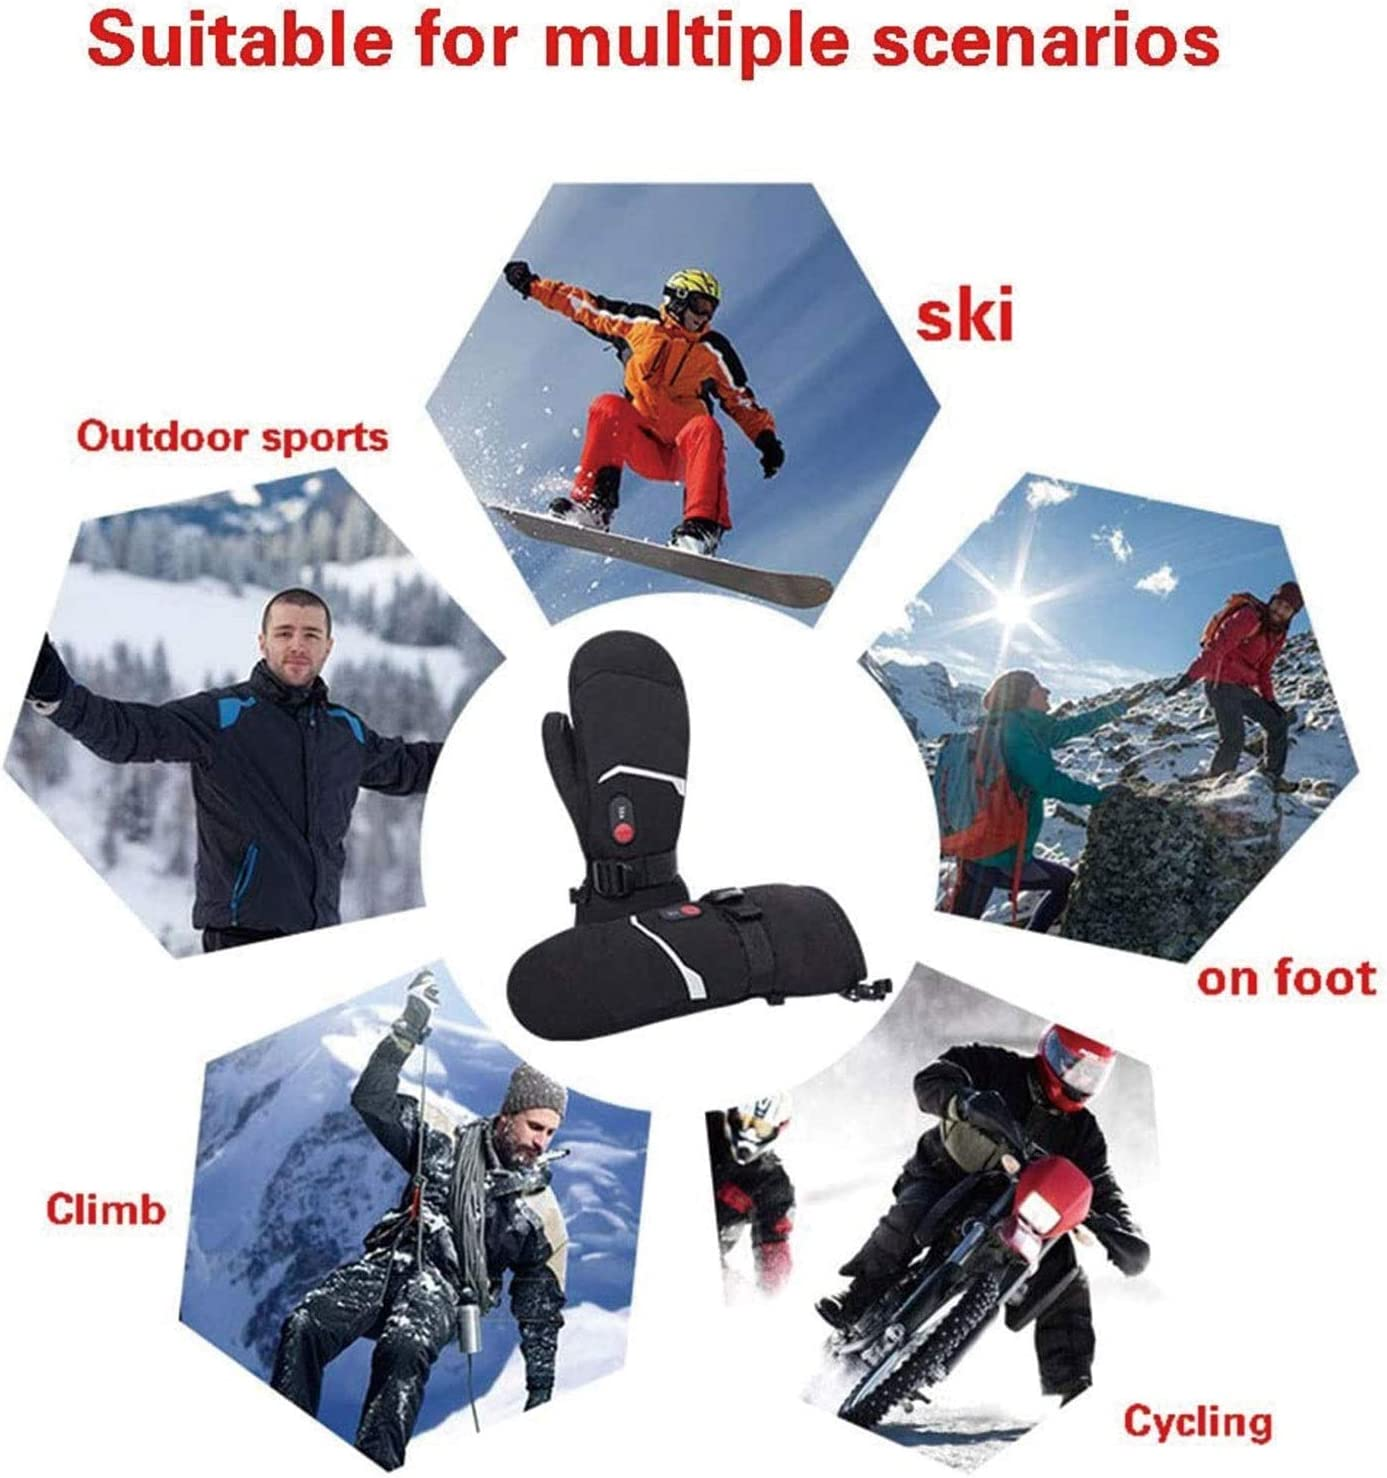 Heated Gloves Mittens Ski Gloves 7.4V 2200Mah Electric Rechargeable Battery for Men Women,Winter Outdoor Sports Snow Skiing Ice Skating Electric Hand Warmers Glove Mittens for Arthritis Hand